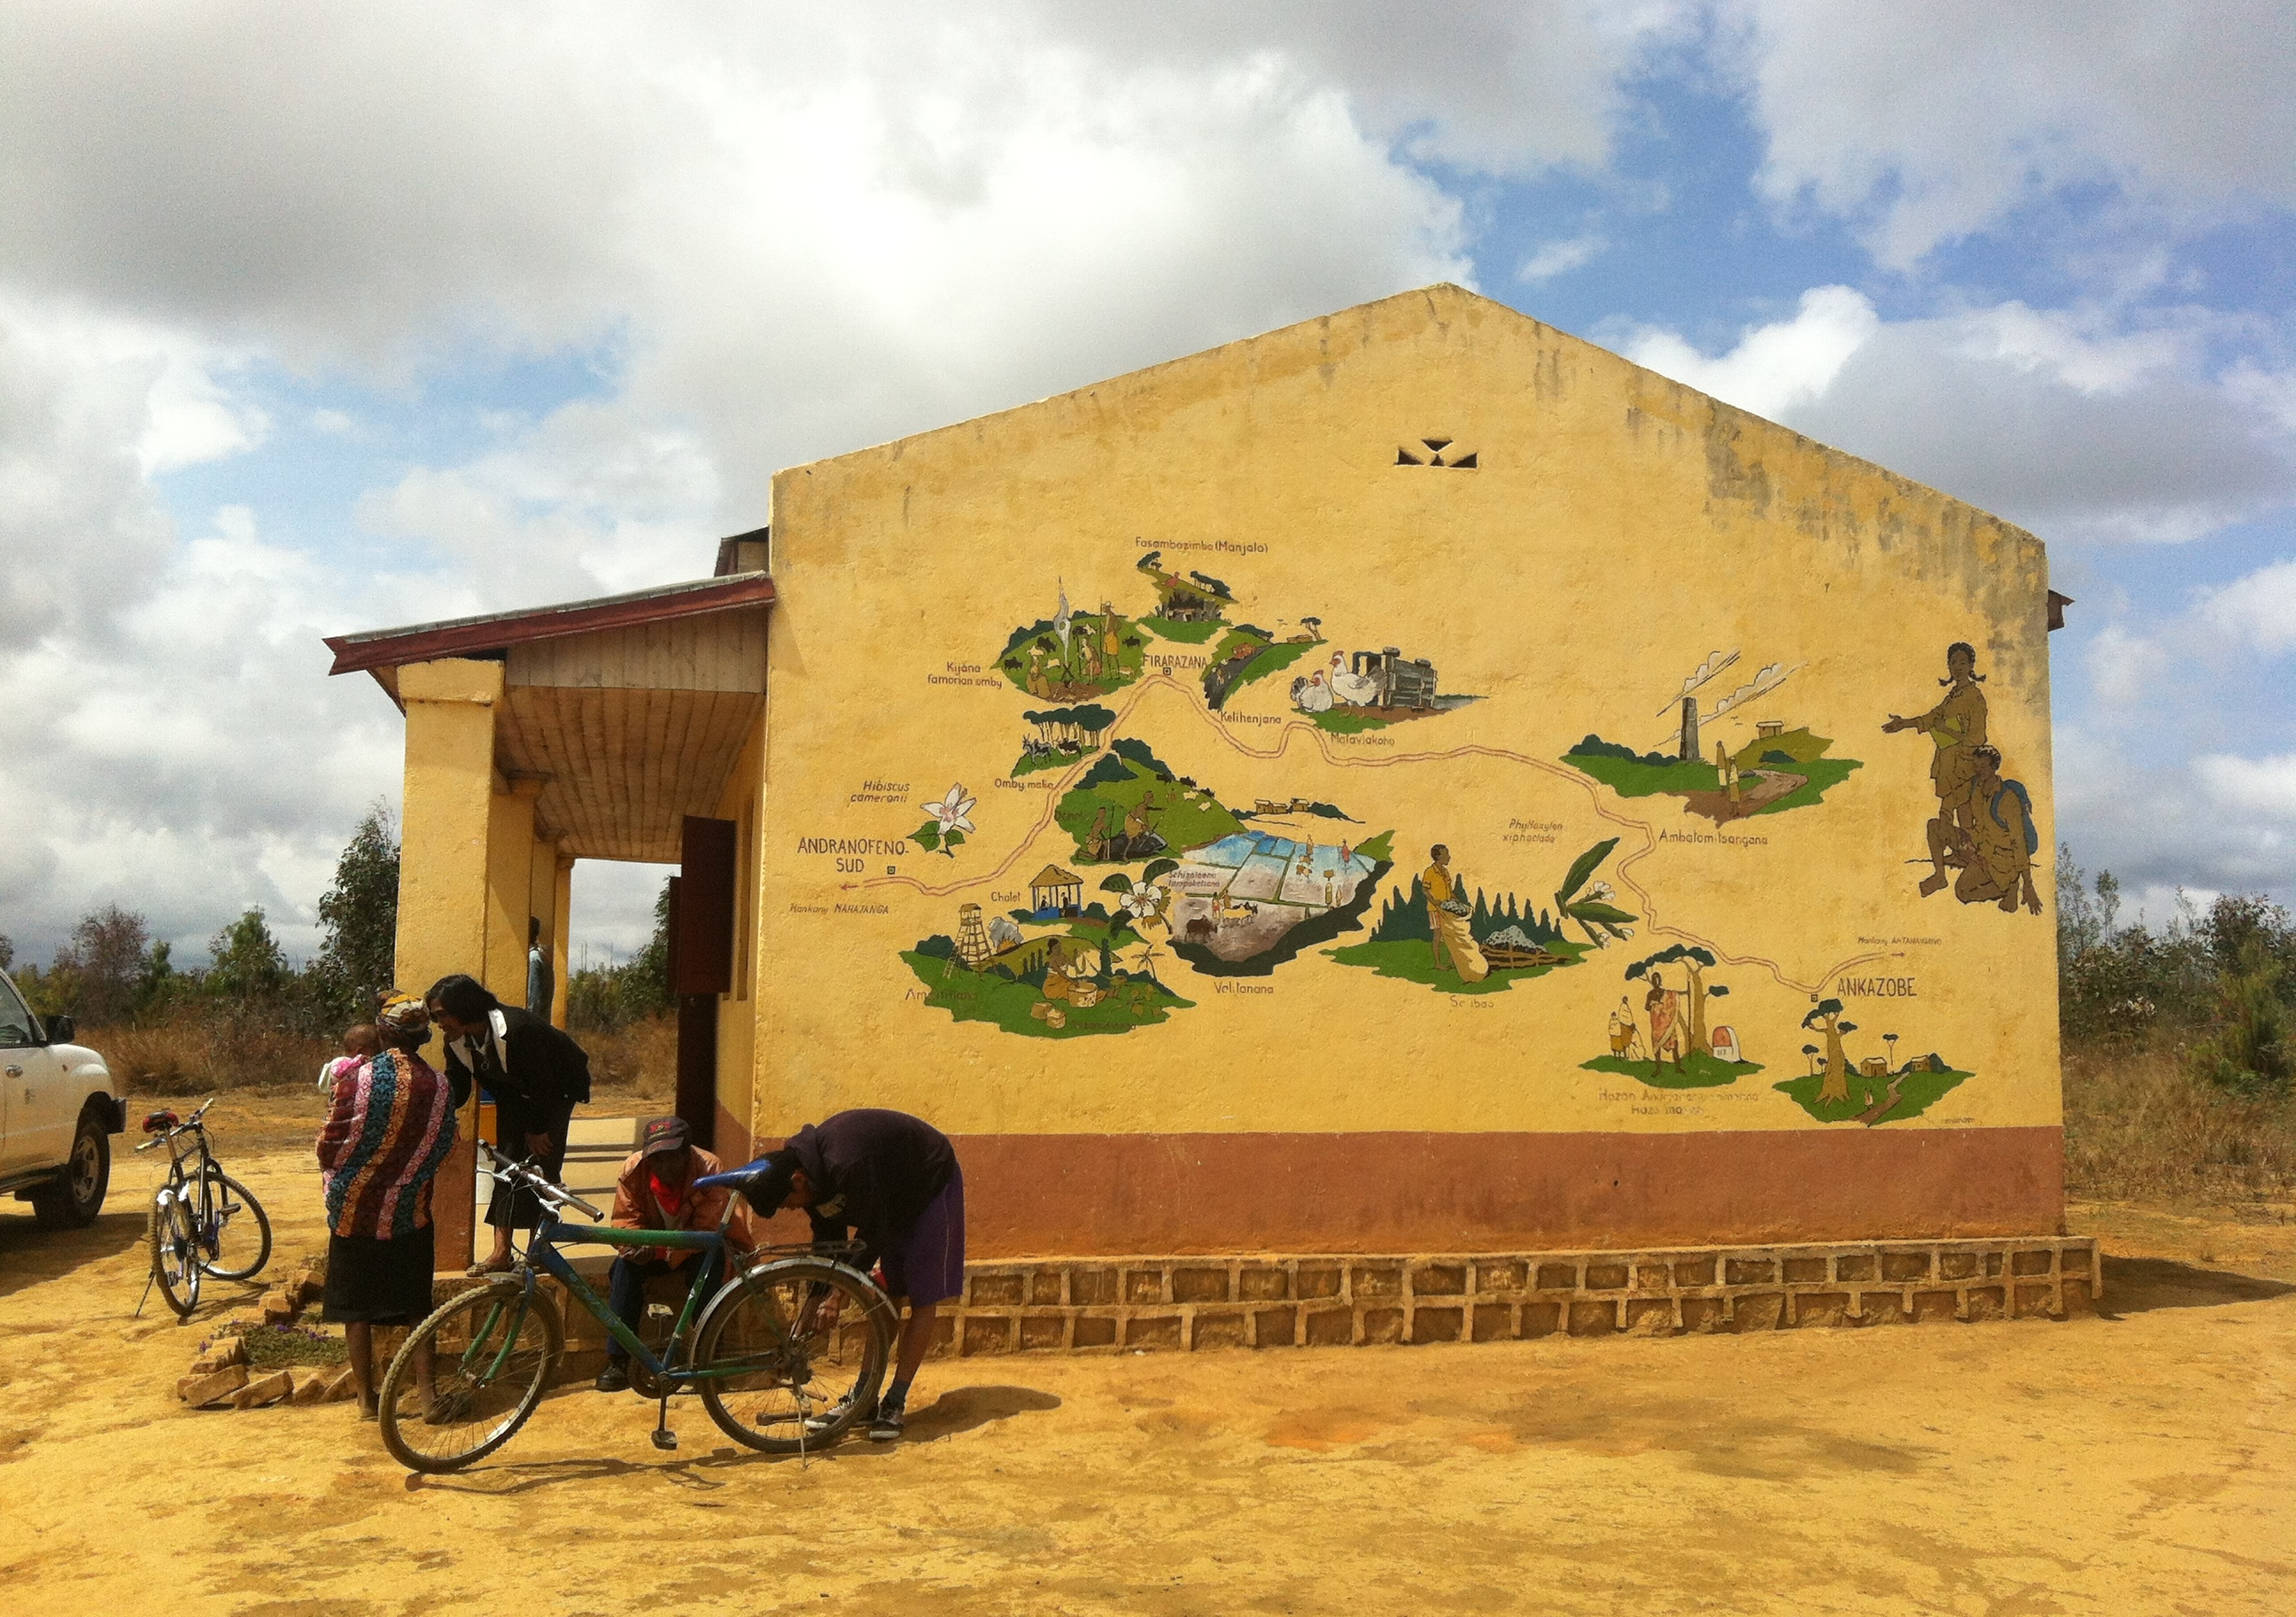 Some teachers, students and their bikes outside a school in Madagascar